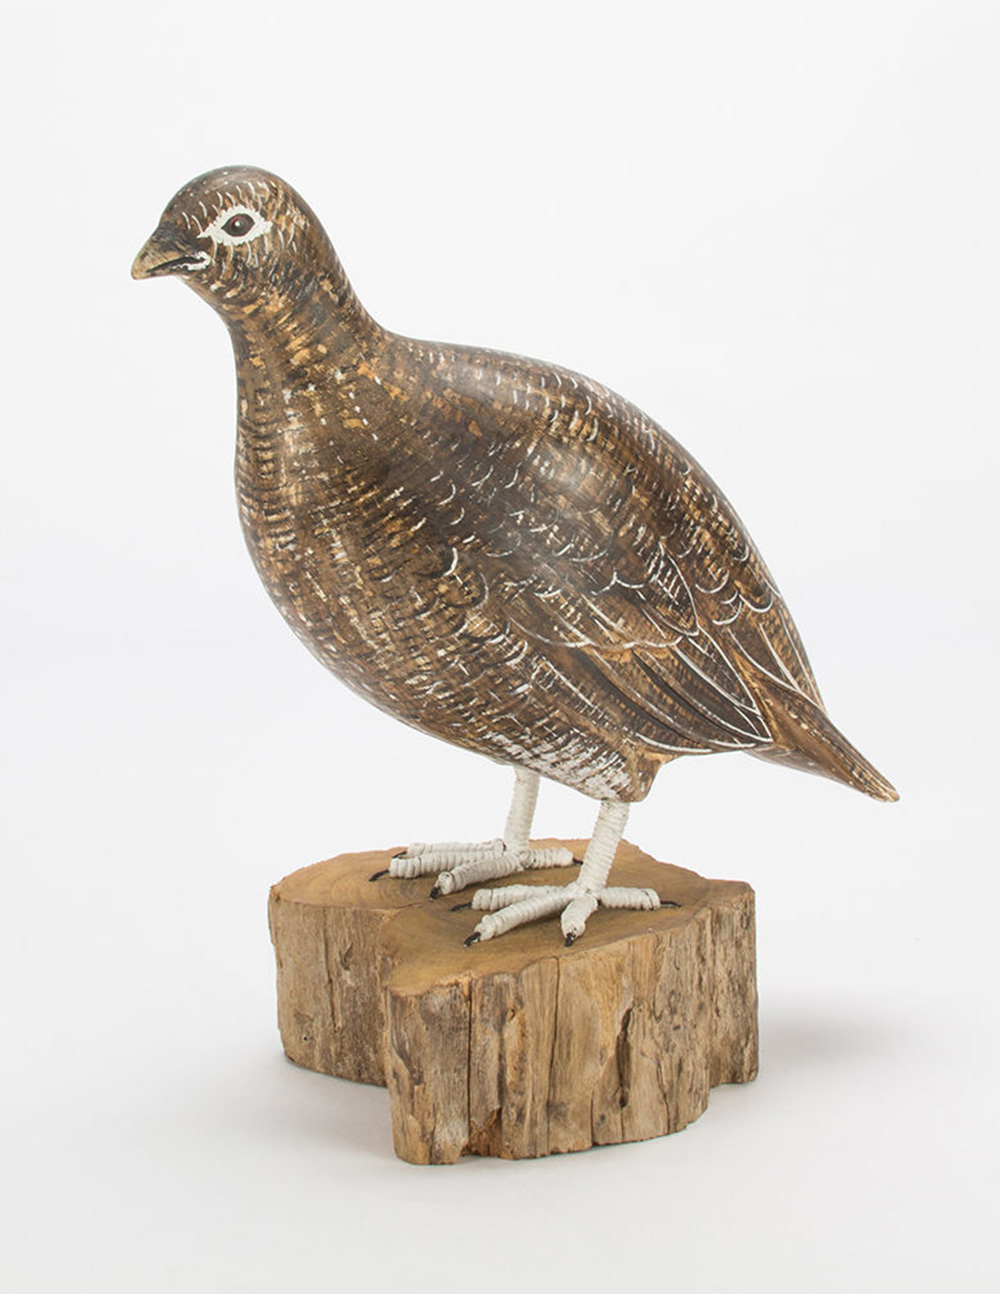 D388 Archipelago Grouse Female Wooden Bird Sculpture | Avant Garden